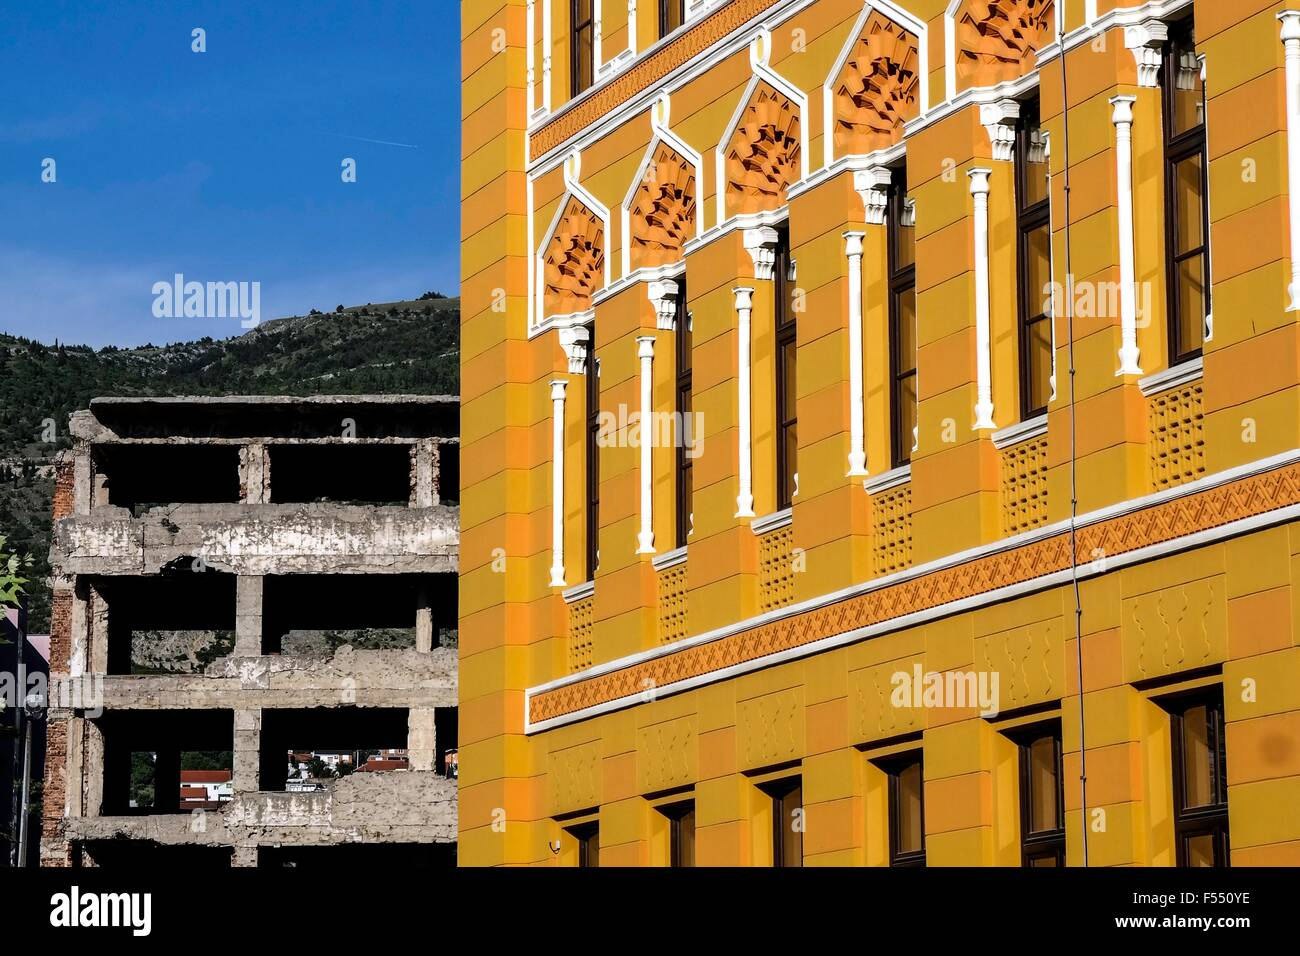 Building of the United World College and ruin in Mostar. - Stock Image